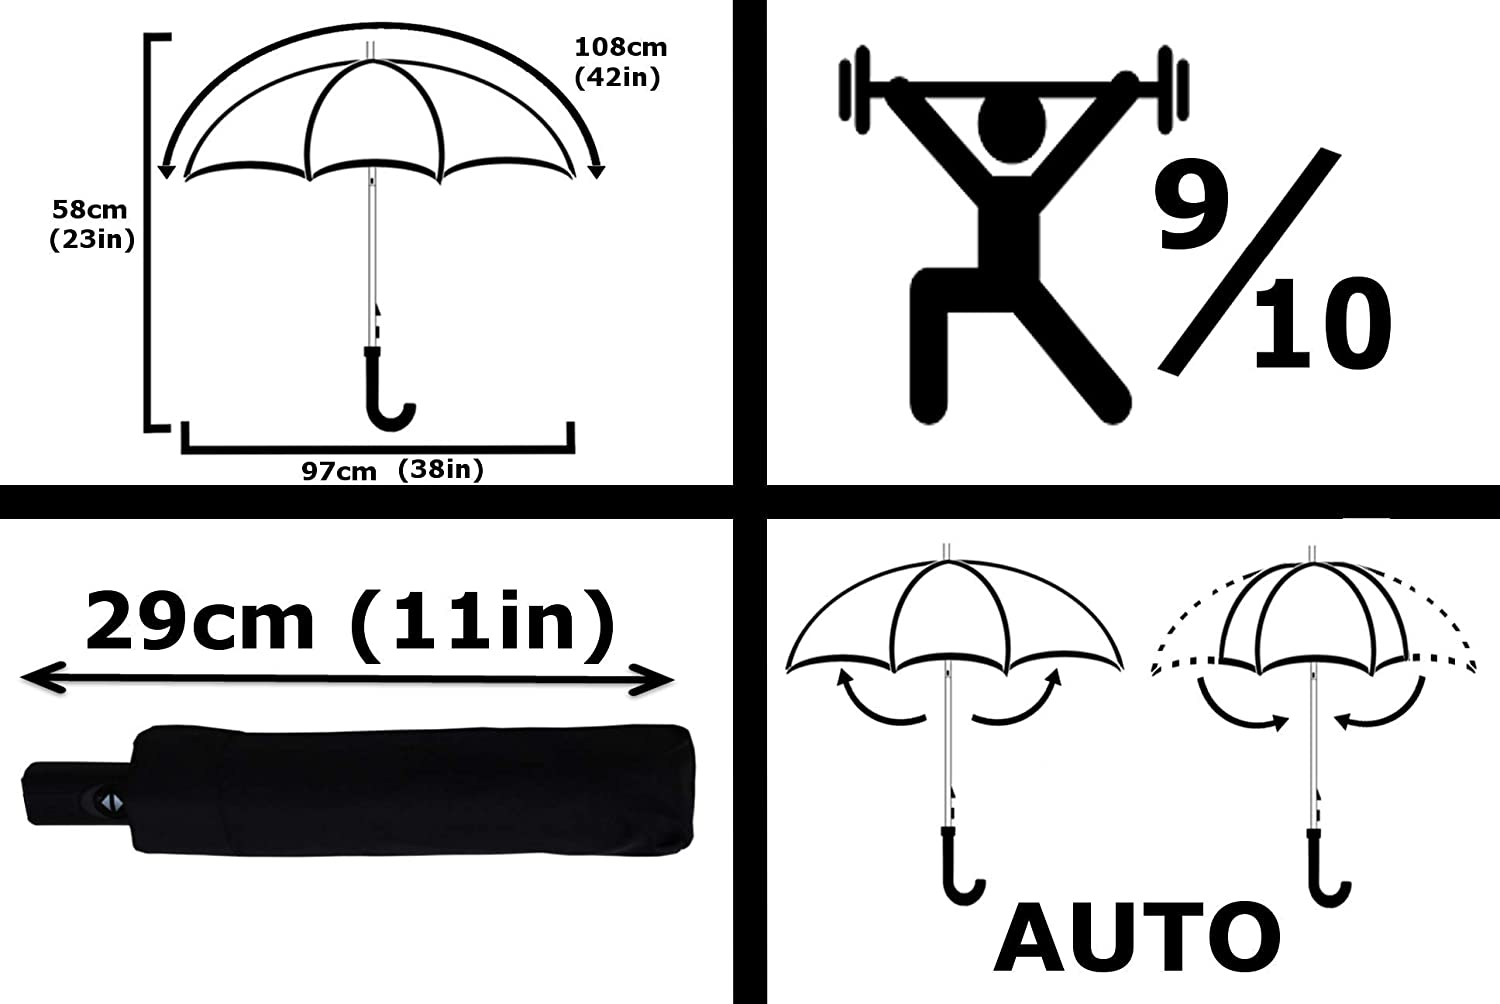 COMPACT YET STRONG Windproof Auto Open Close Lime Green Small Folding Umbrella Vented Canopy COLLAR AND CUFFS LONDON